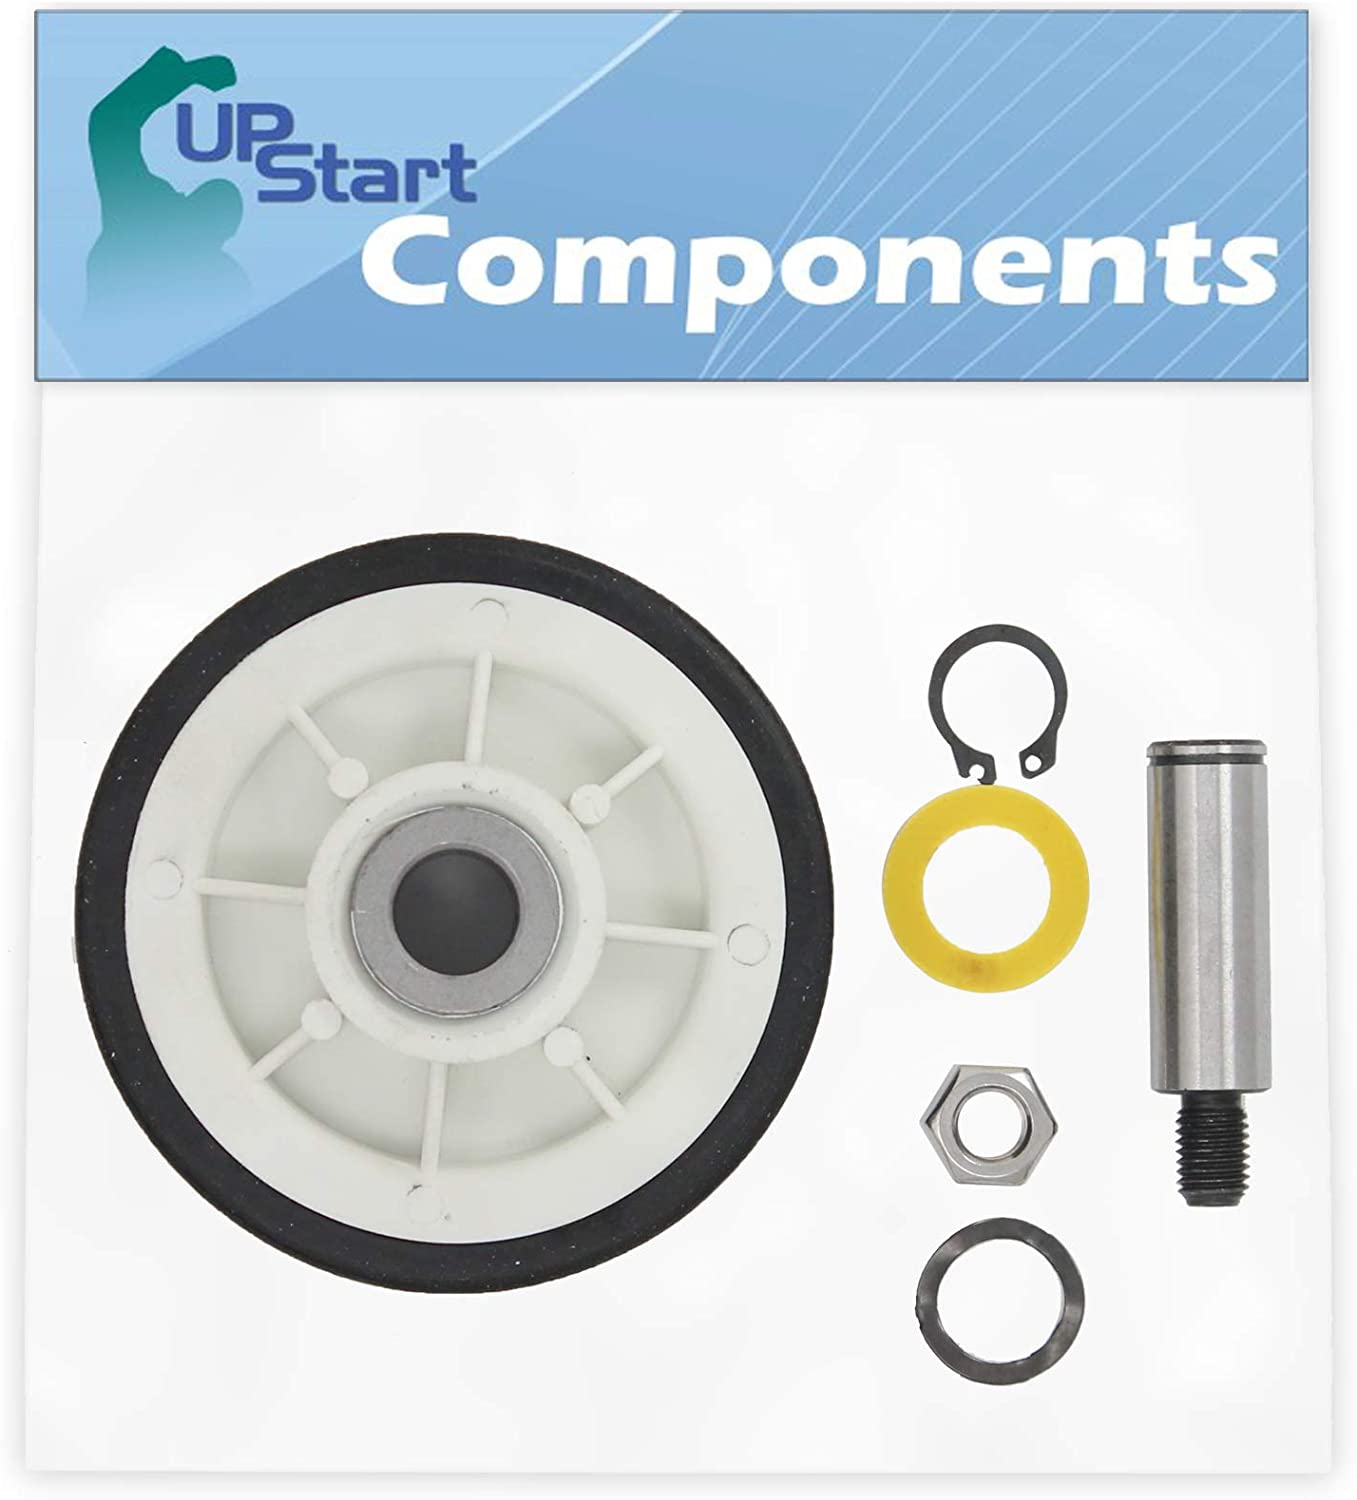 12001541 Drum Support Roller Kit Replacement for Maytag MUG15MNAWW Dryer - Compatible with 303373 Dryer Drum Roller Wheel - UpStart Components Brand